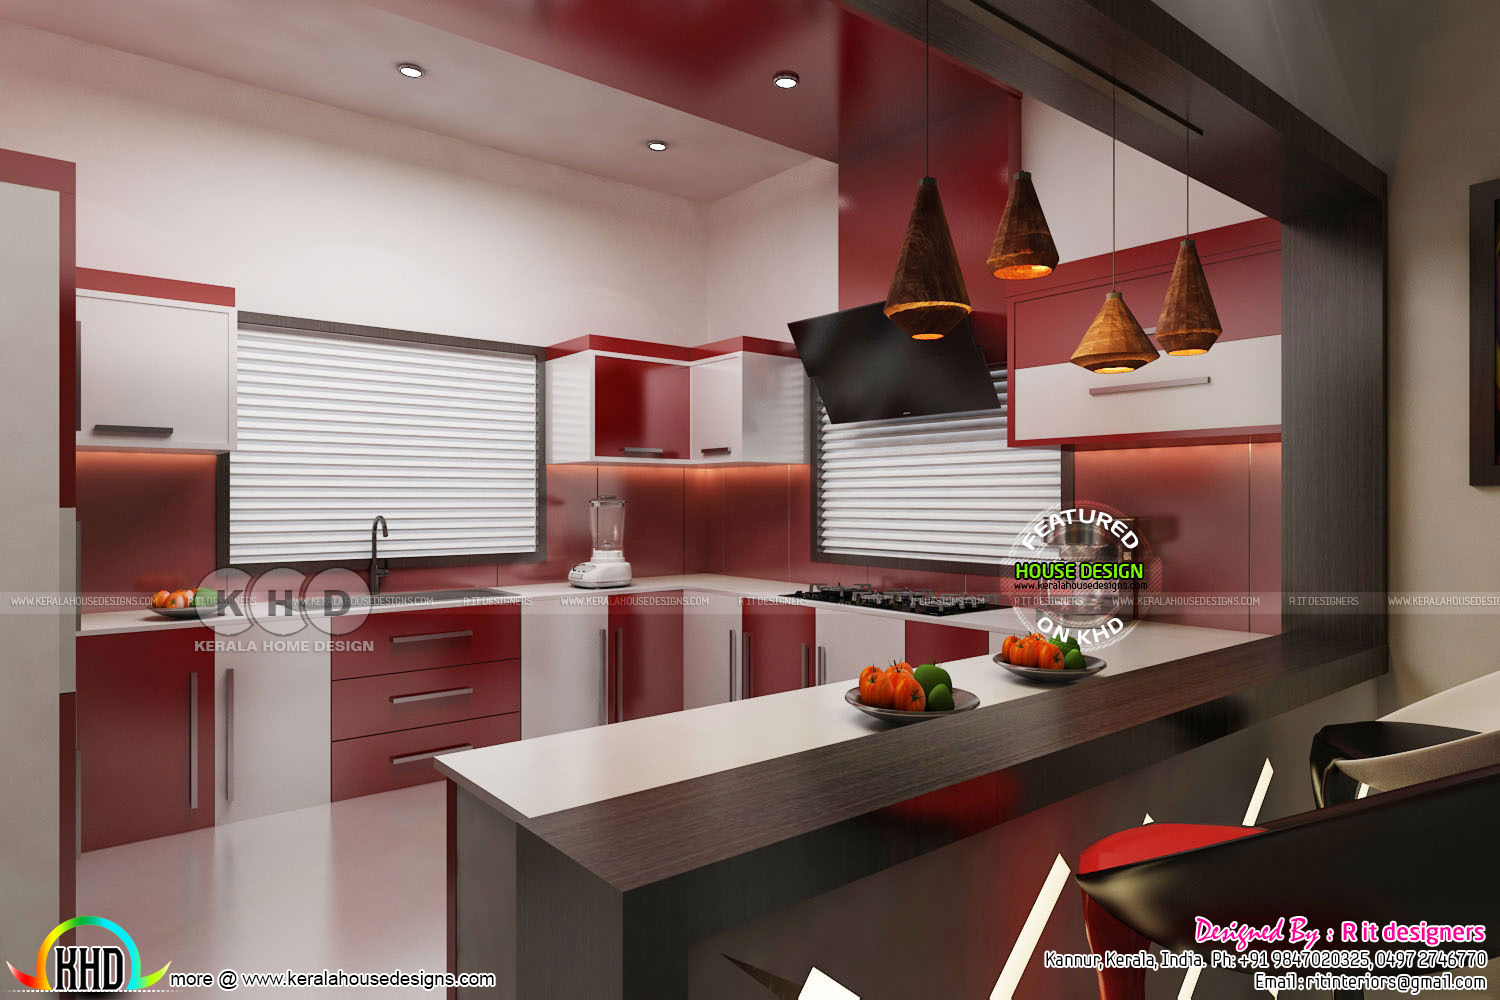 Interior Design Ideas Kitchen Dining ~ Dining kitchen interior designs kerala home design and